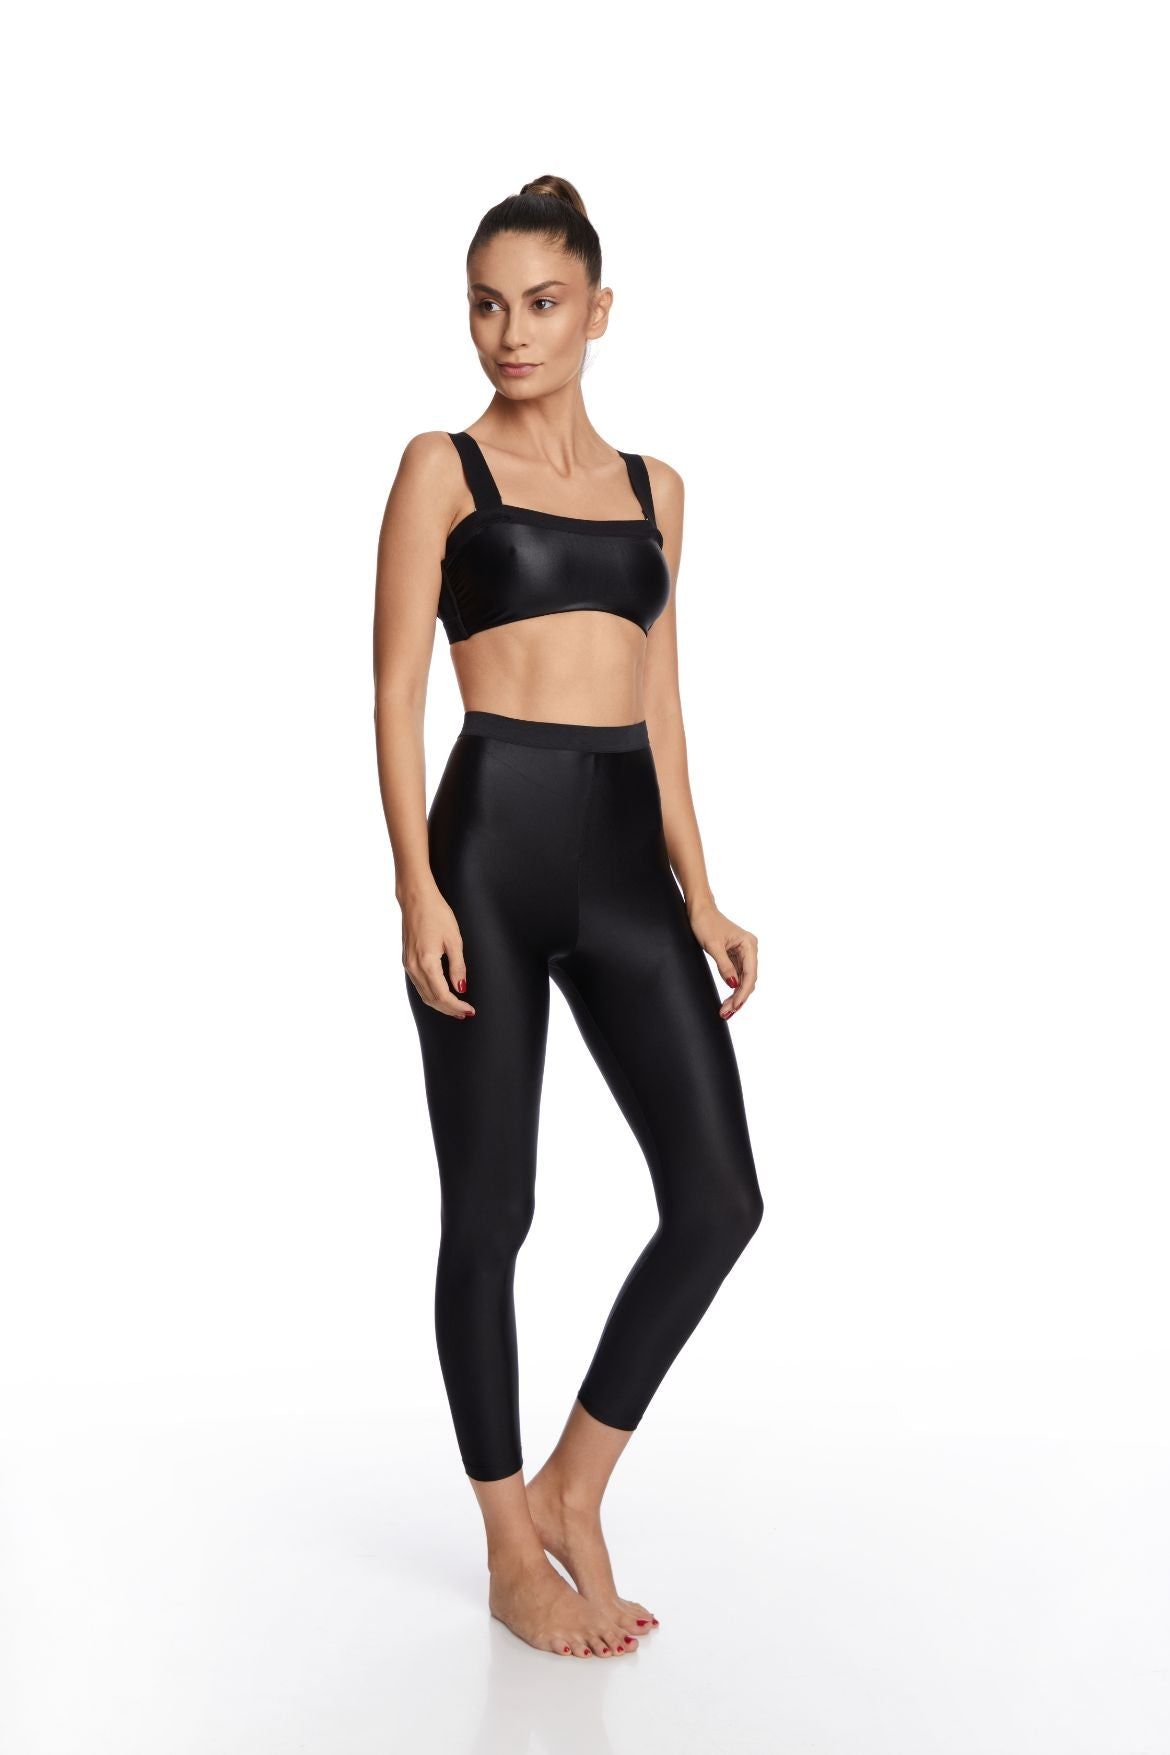 Feel Free Strap Sports Bra in Black - I.D. Sarrieri